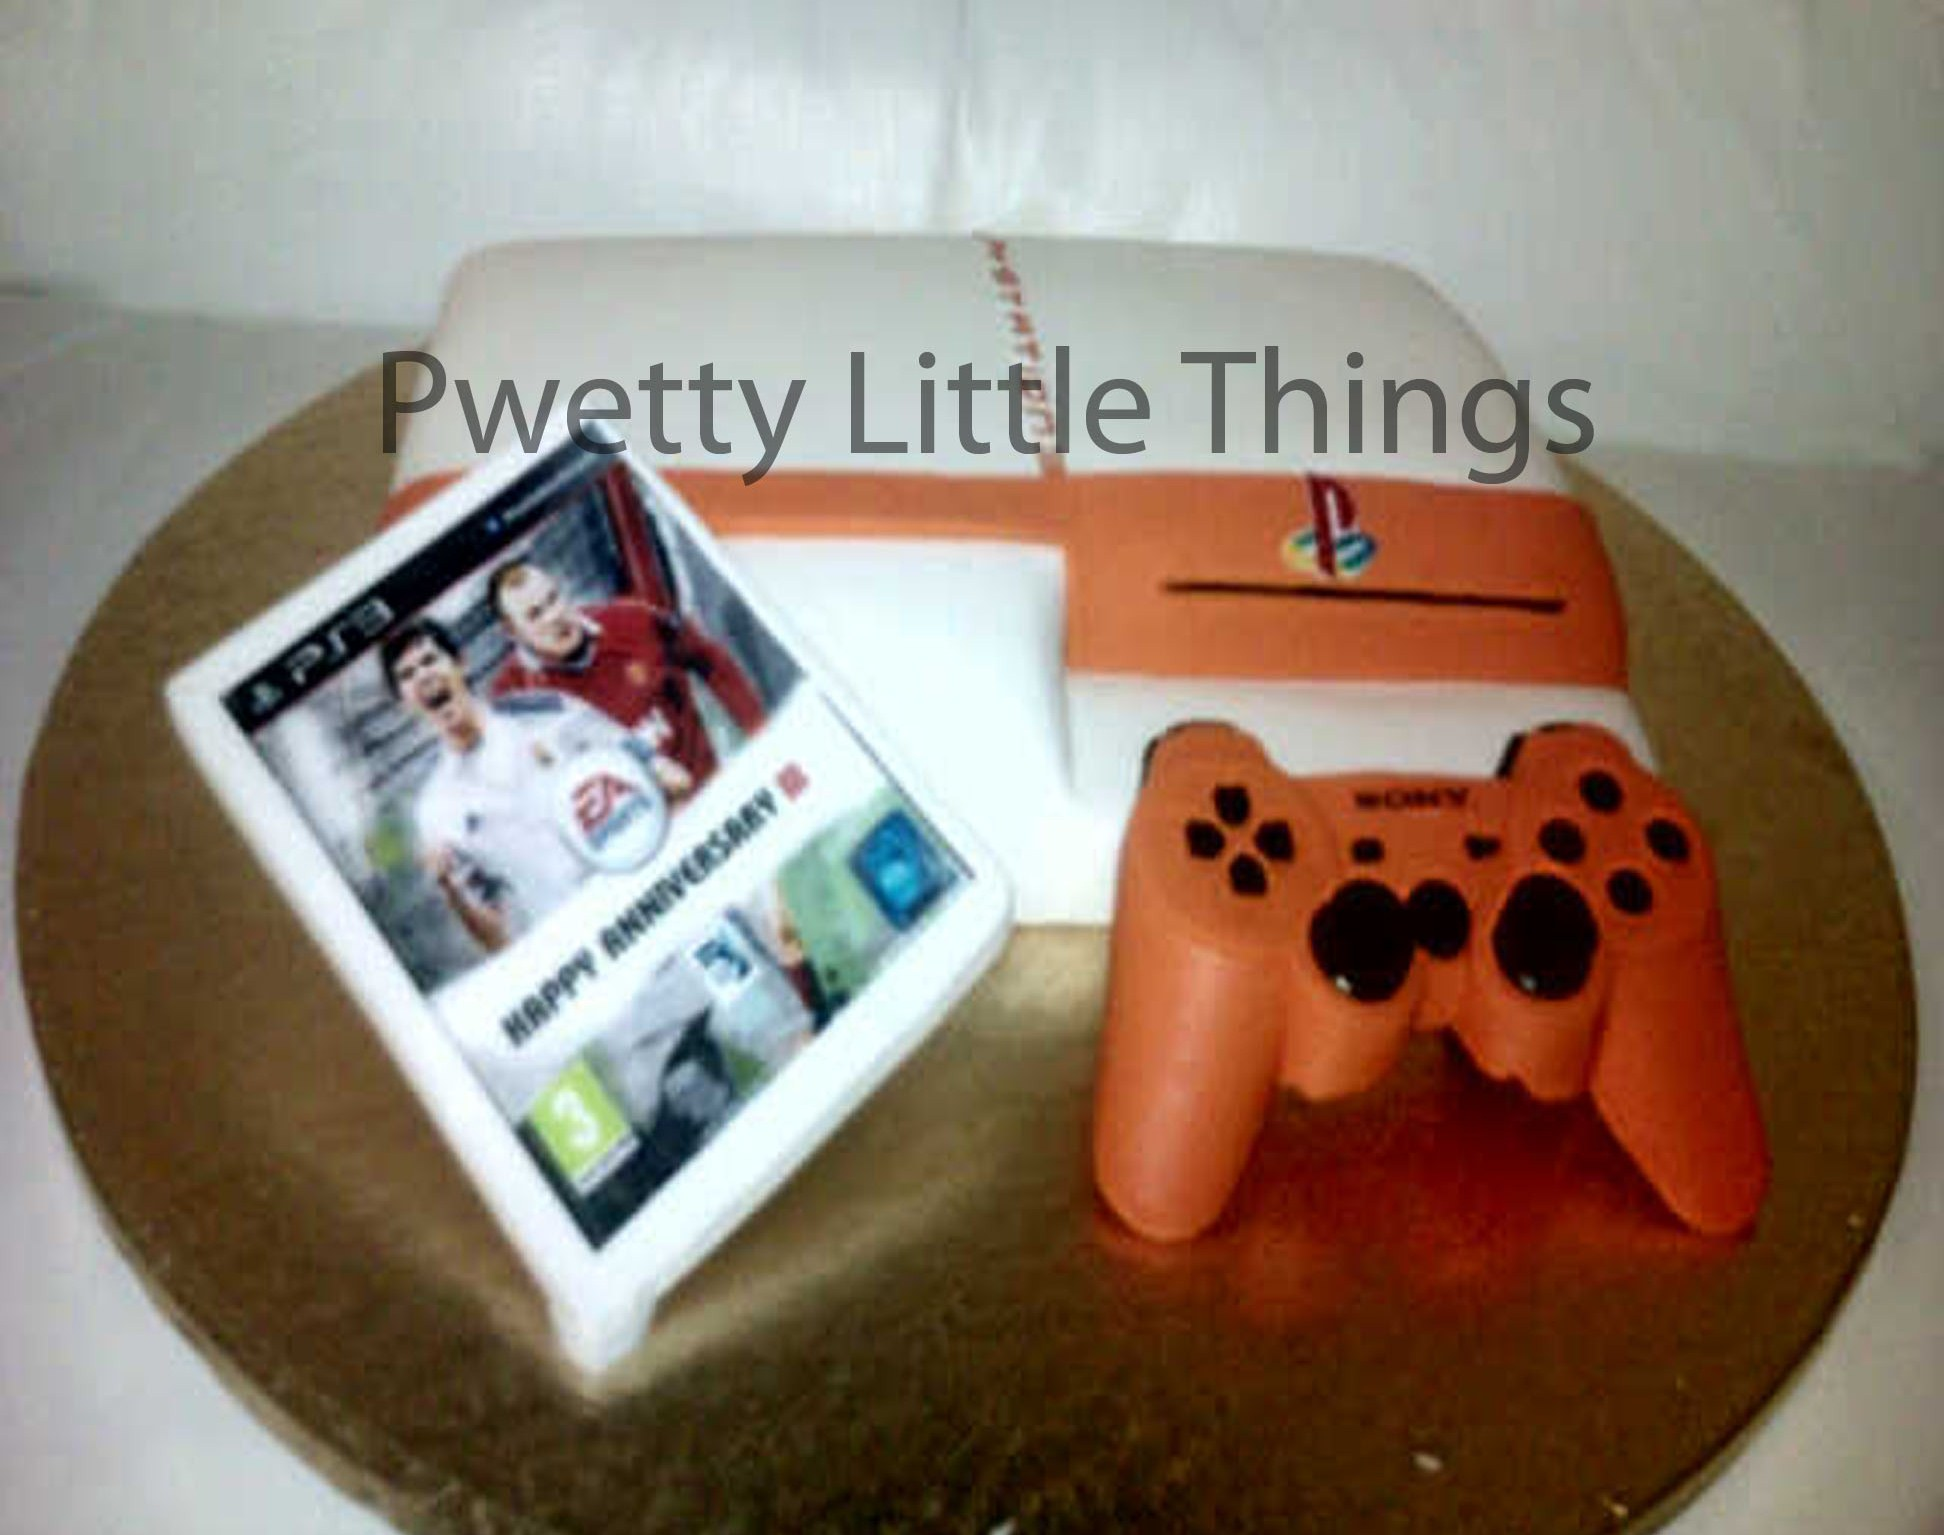 Pwetty Little Things ps3